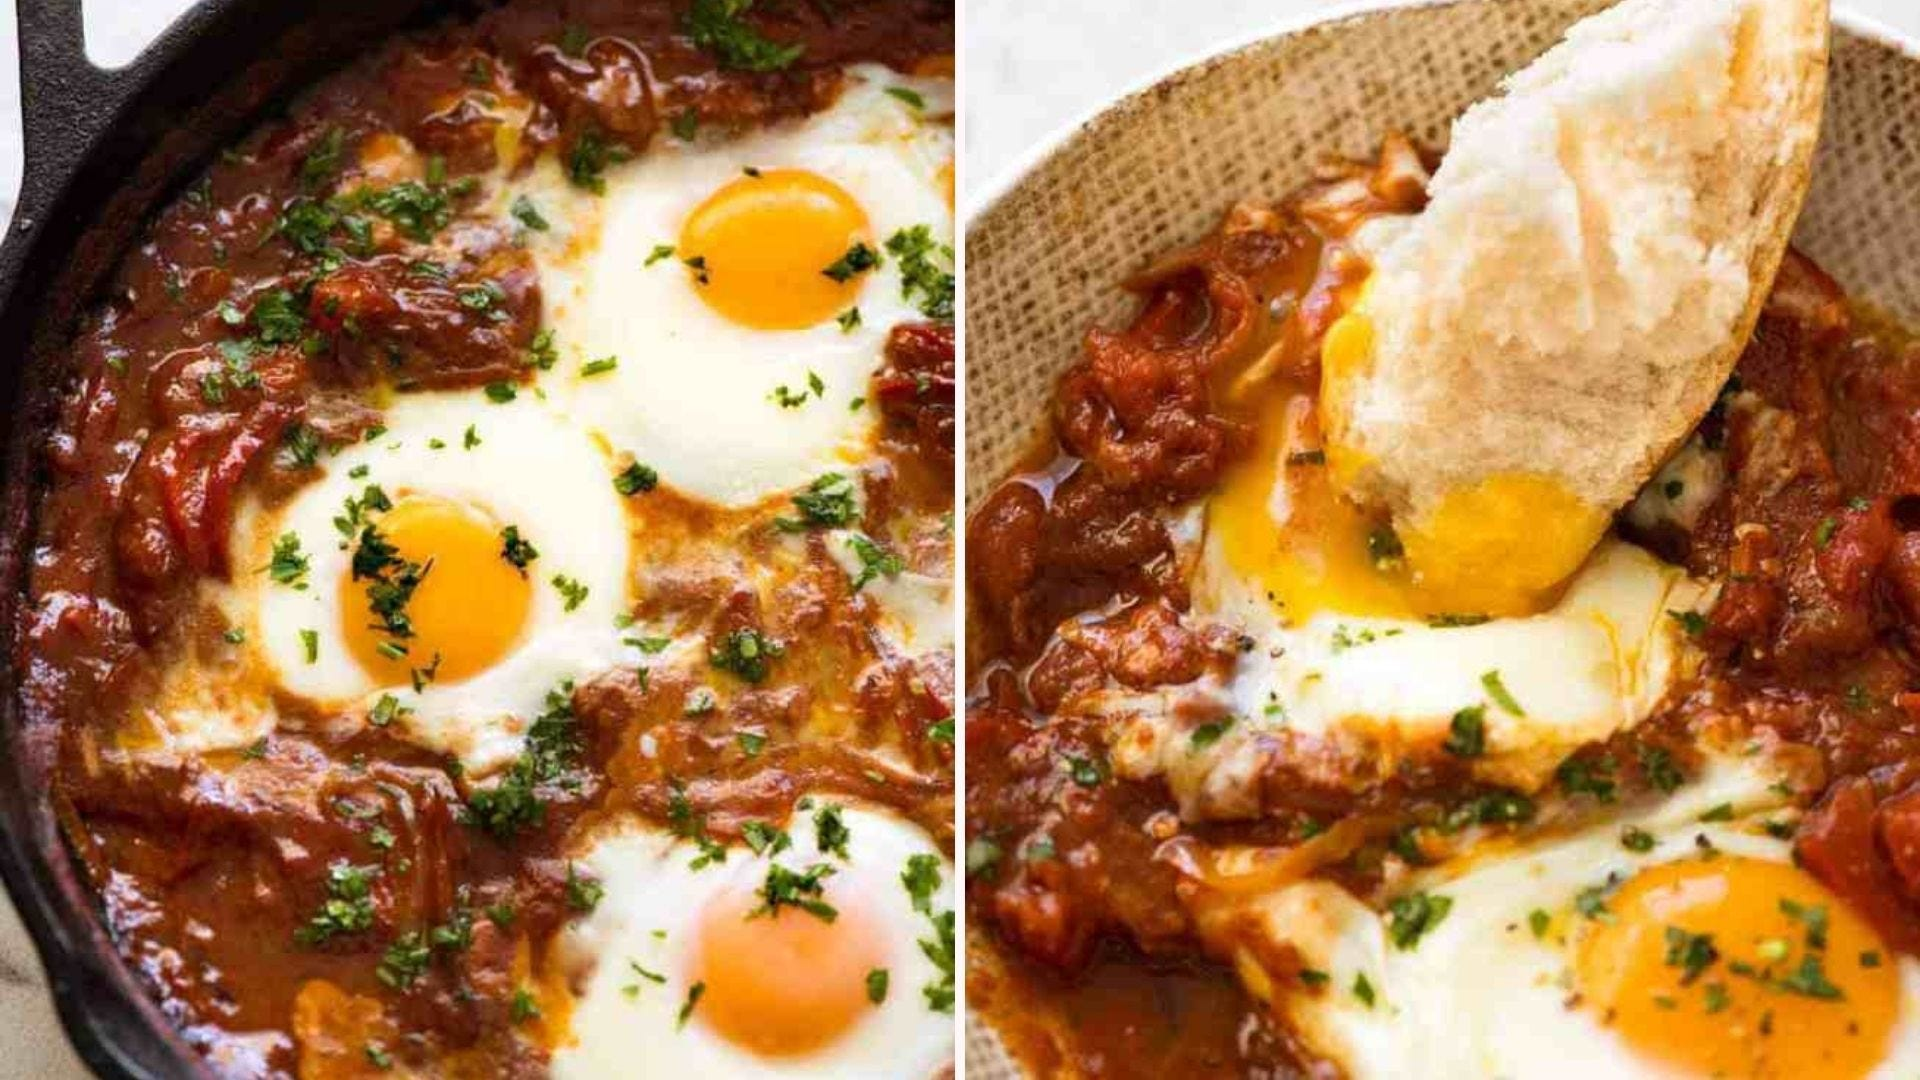 Two images: The left image is of a baked shakshuka skillet topped with cracked eggs and the right image is of warm crusty bread dipped in the yolk.